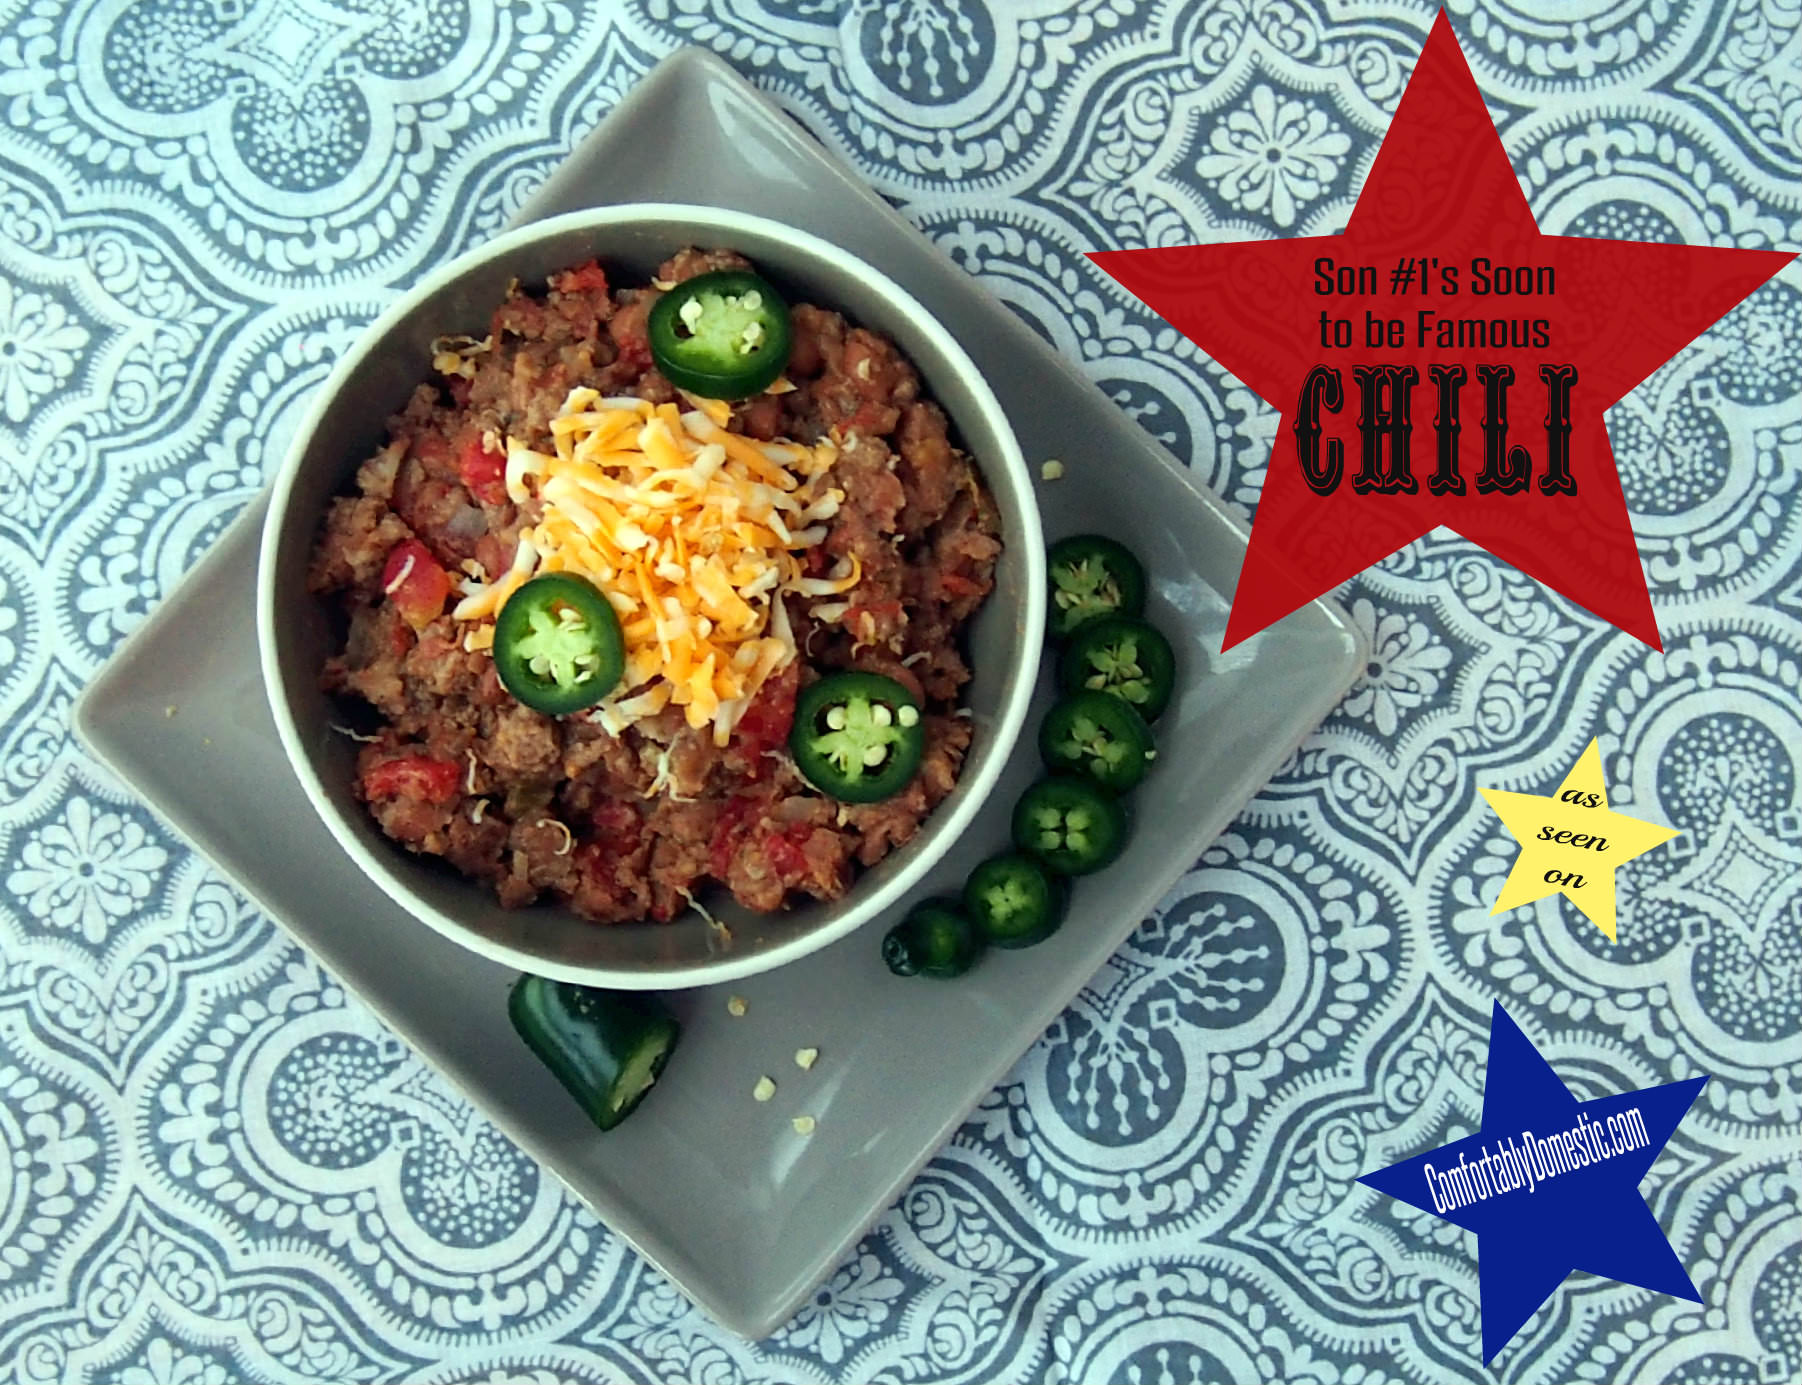 Son #1's Soon-to-be-Famous Chili Recipe | ComfortablyDomestic.com